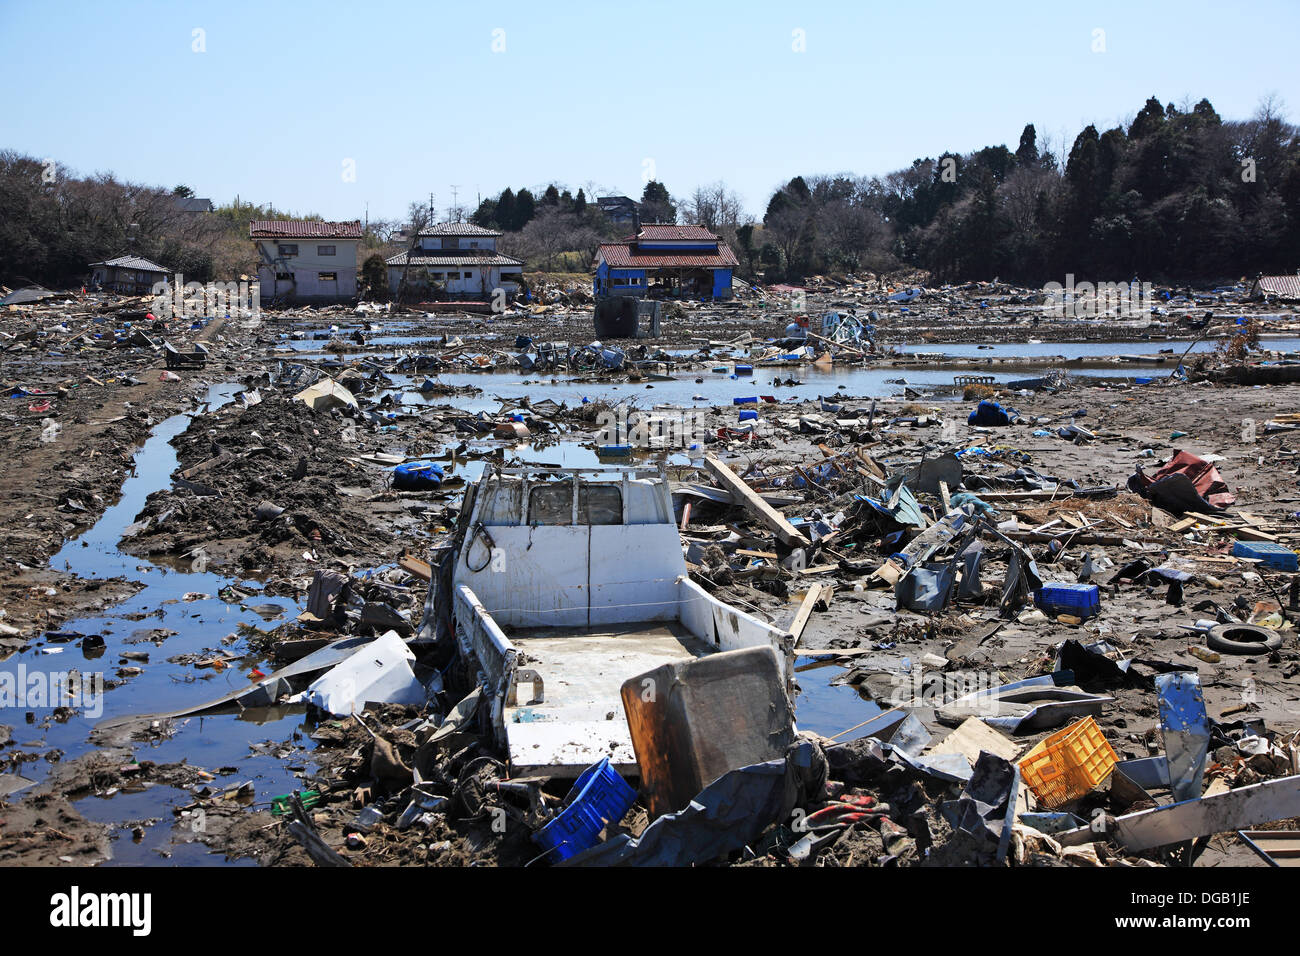 Japan, Fukushima prefecture, Soma-shinchimachi, the area was destroyed by the tsunami on March 11th, 2011 - Stock Image